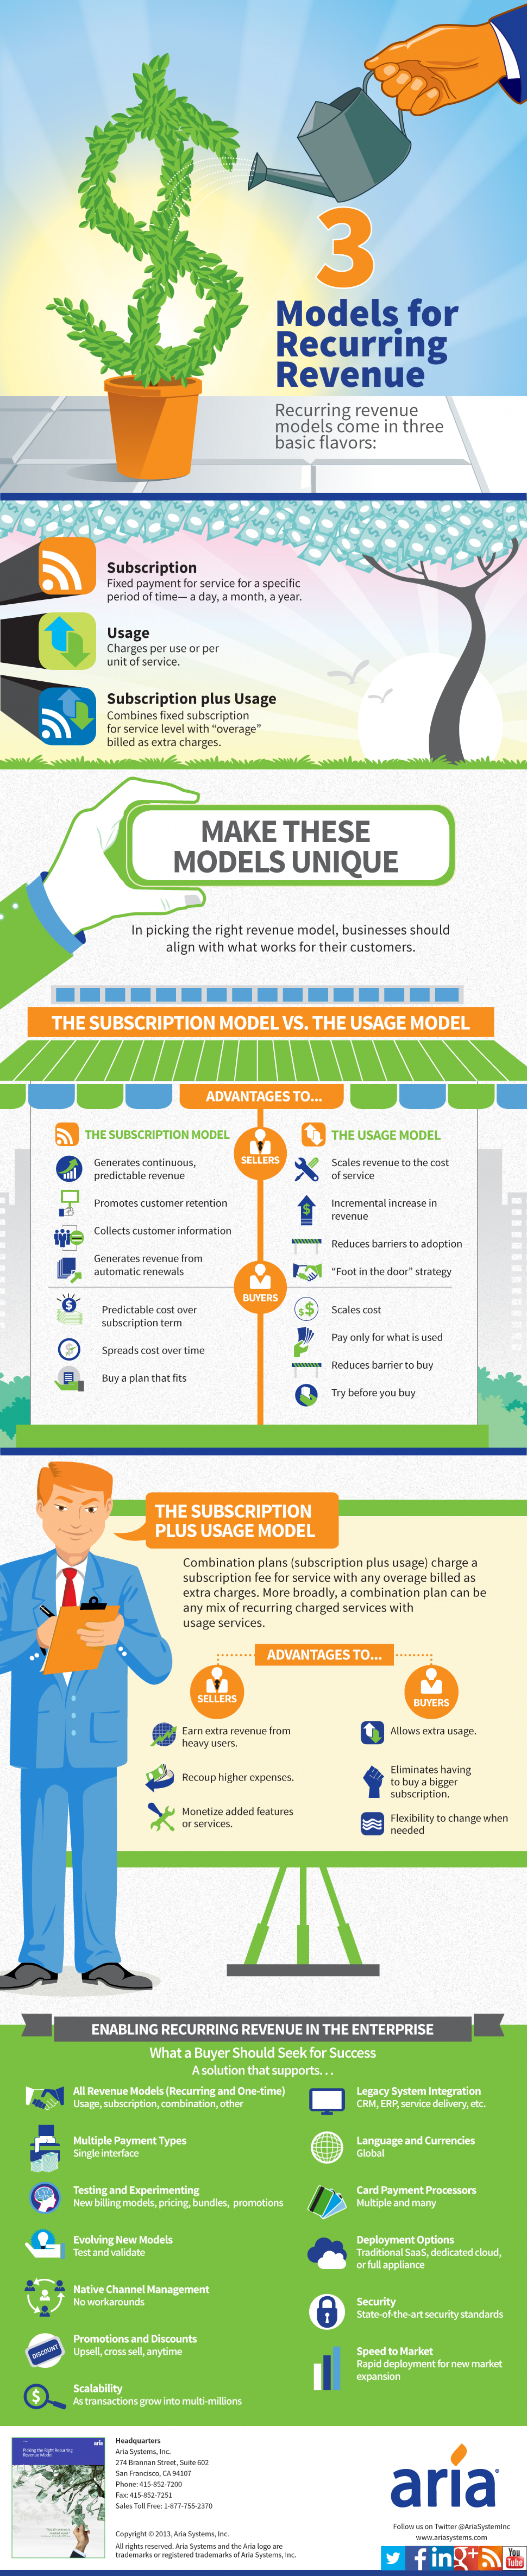 3 Models for Recurring Revenue Infographic